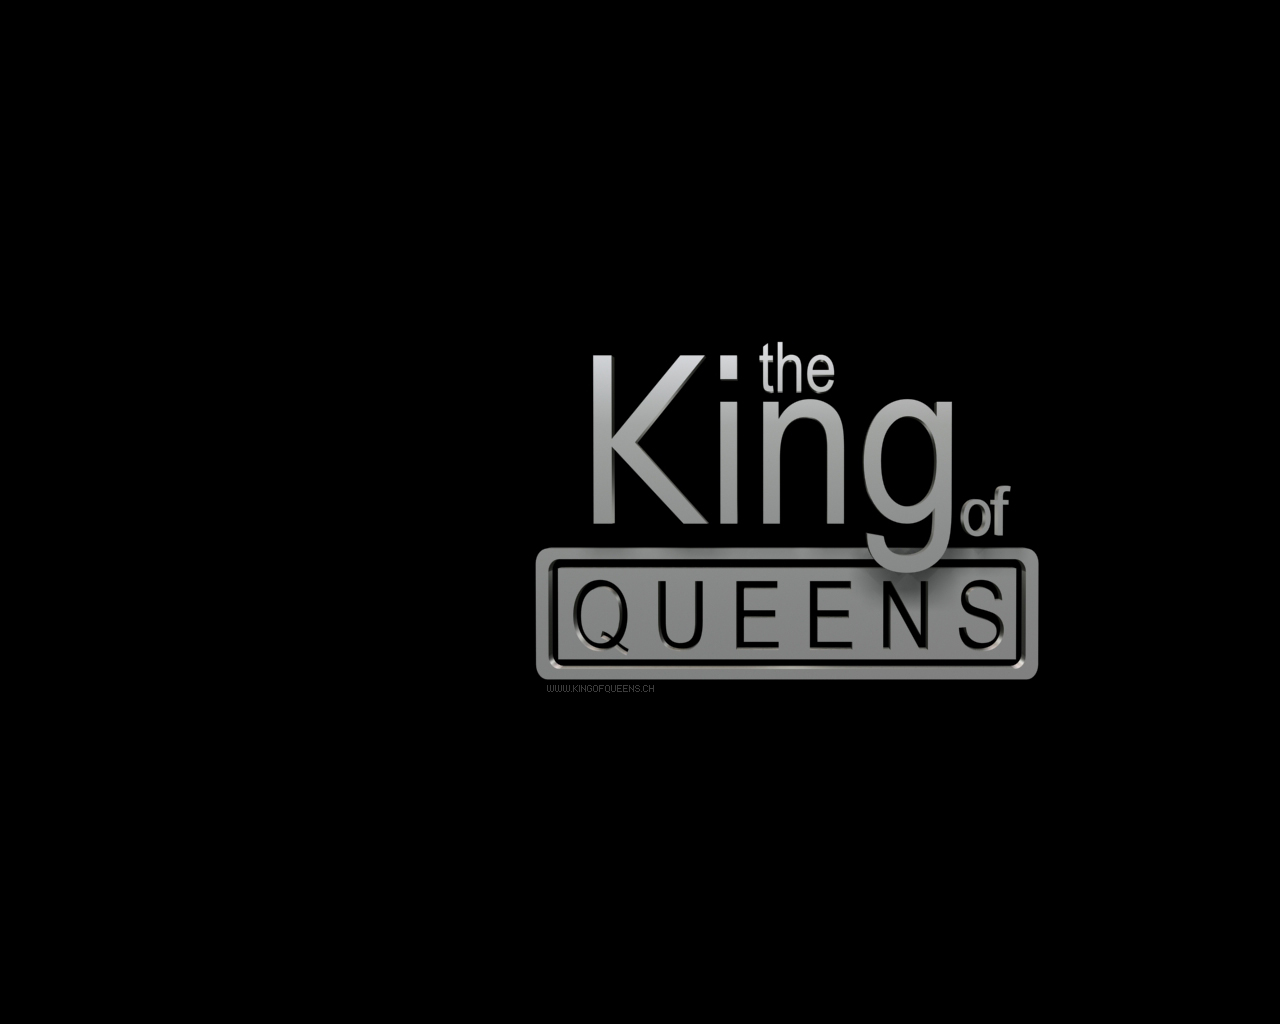 96 King And Queen Wallpapers On Wallpapersafari